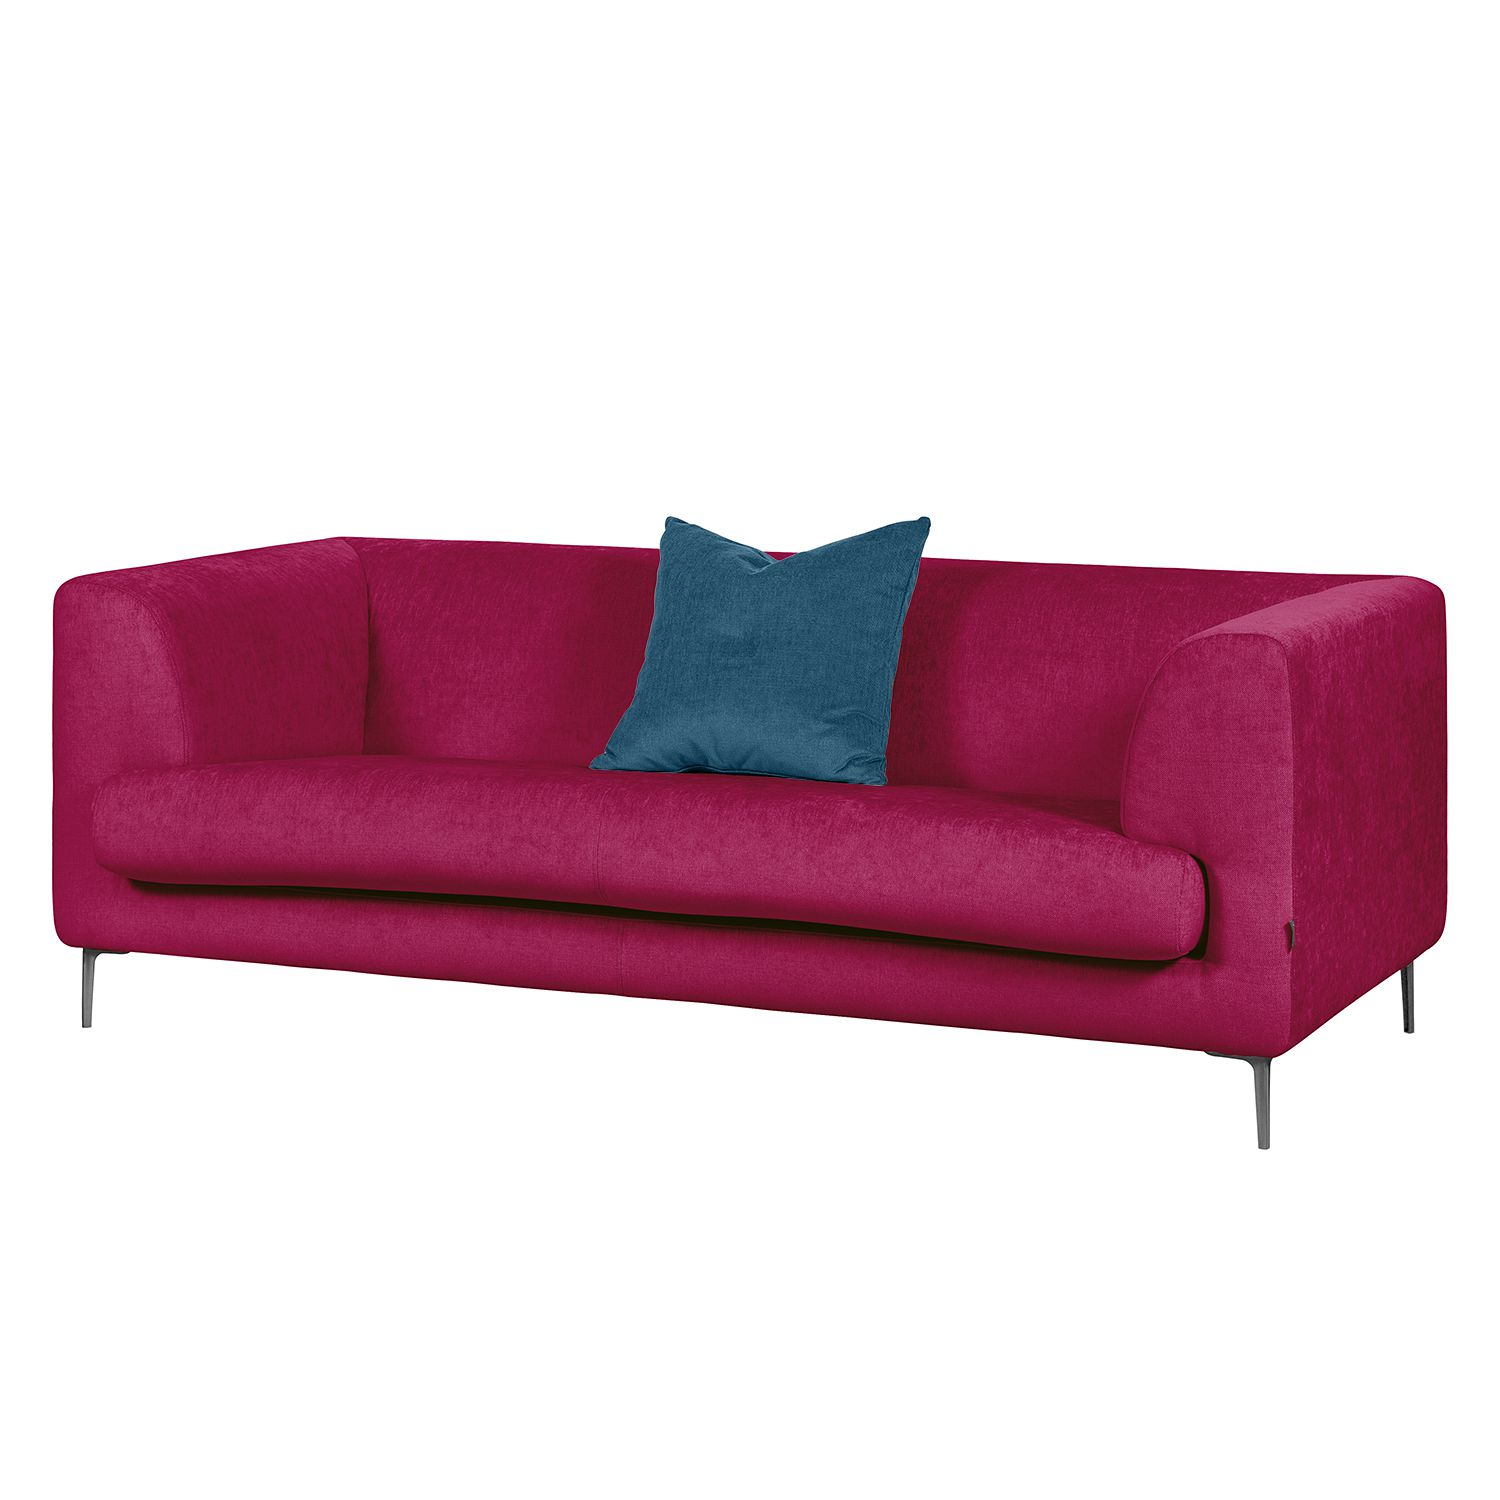 Sofa Sombret (2,5-Sitzer) - Webstoff - Cyclam, Says Who